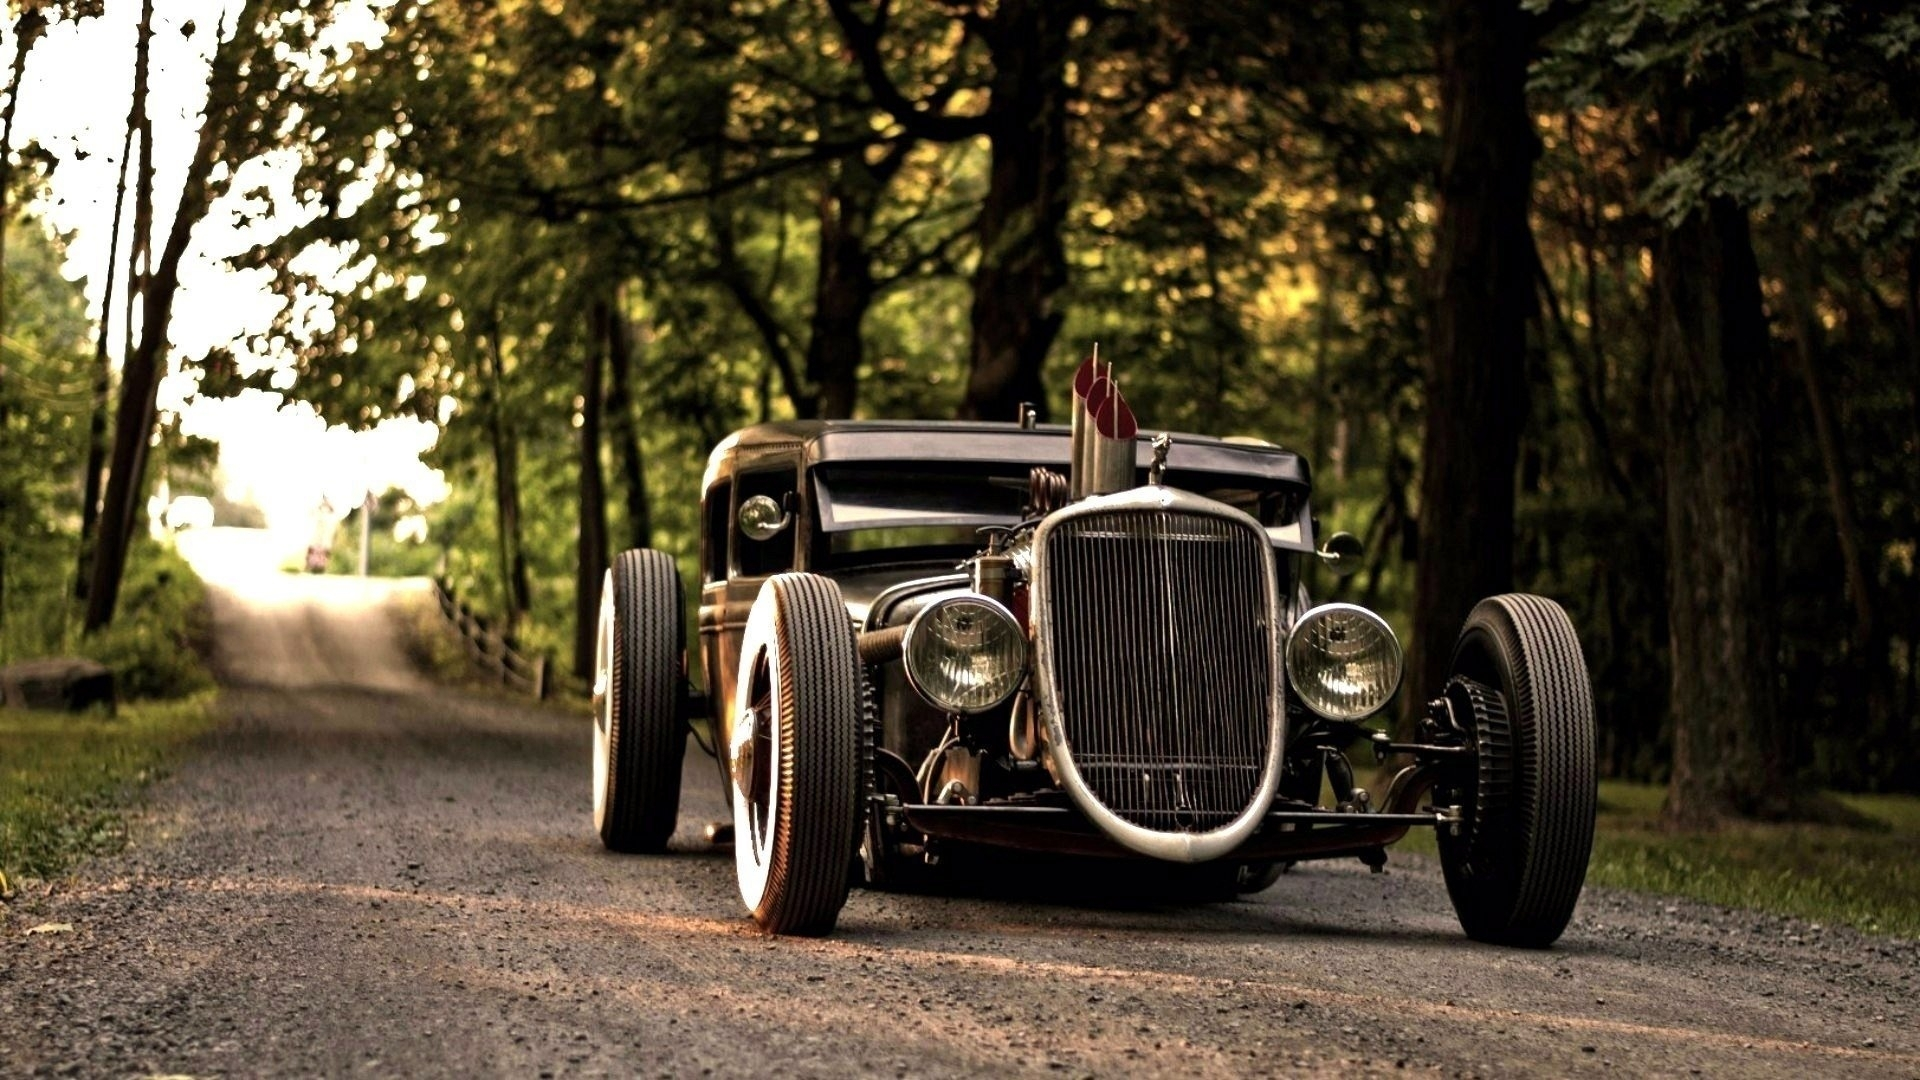 14 rat rod hd wallpapers | background images - wallpaper abyss